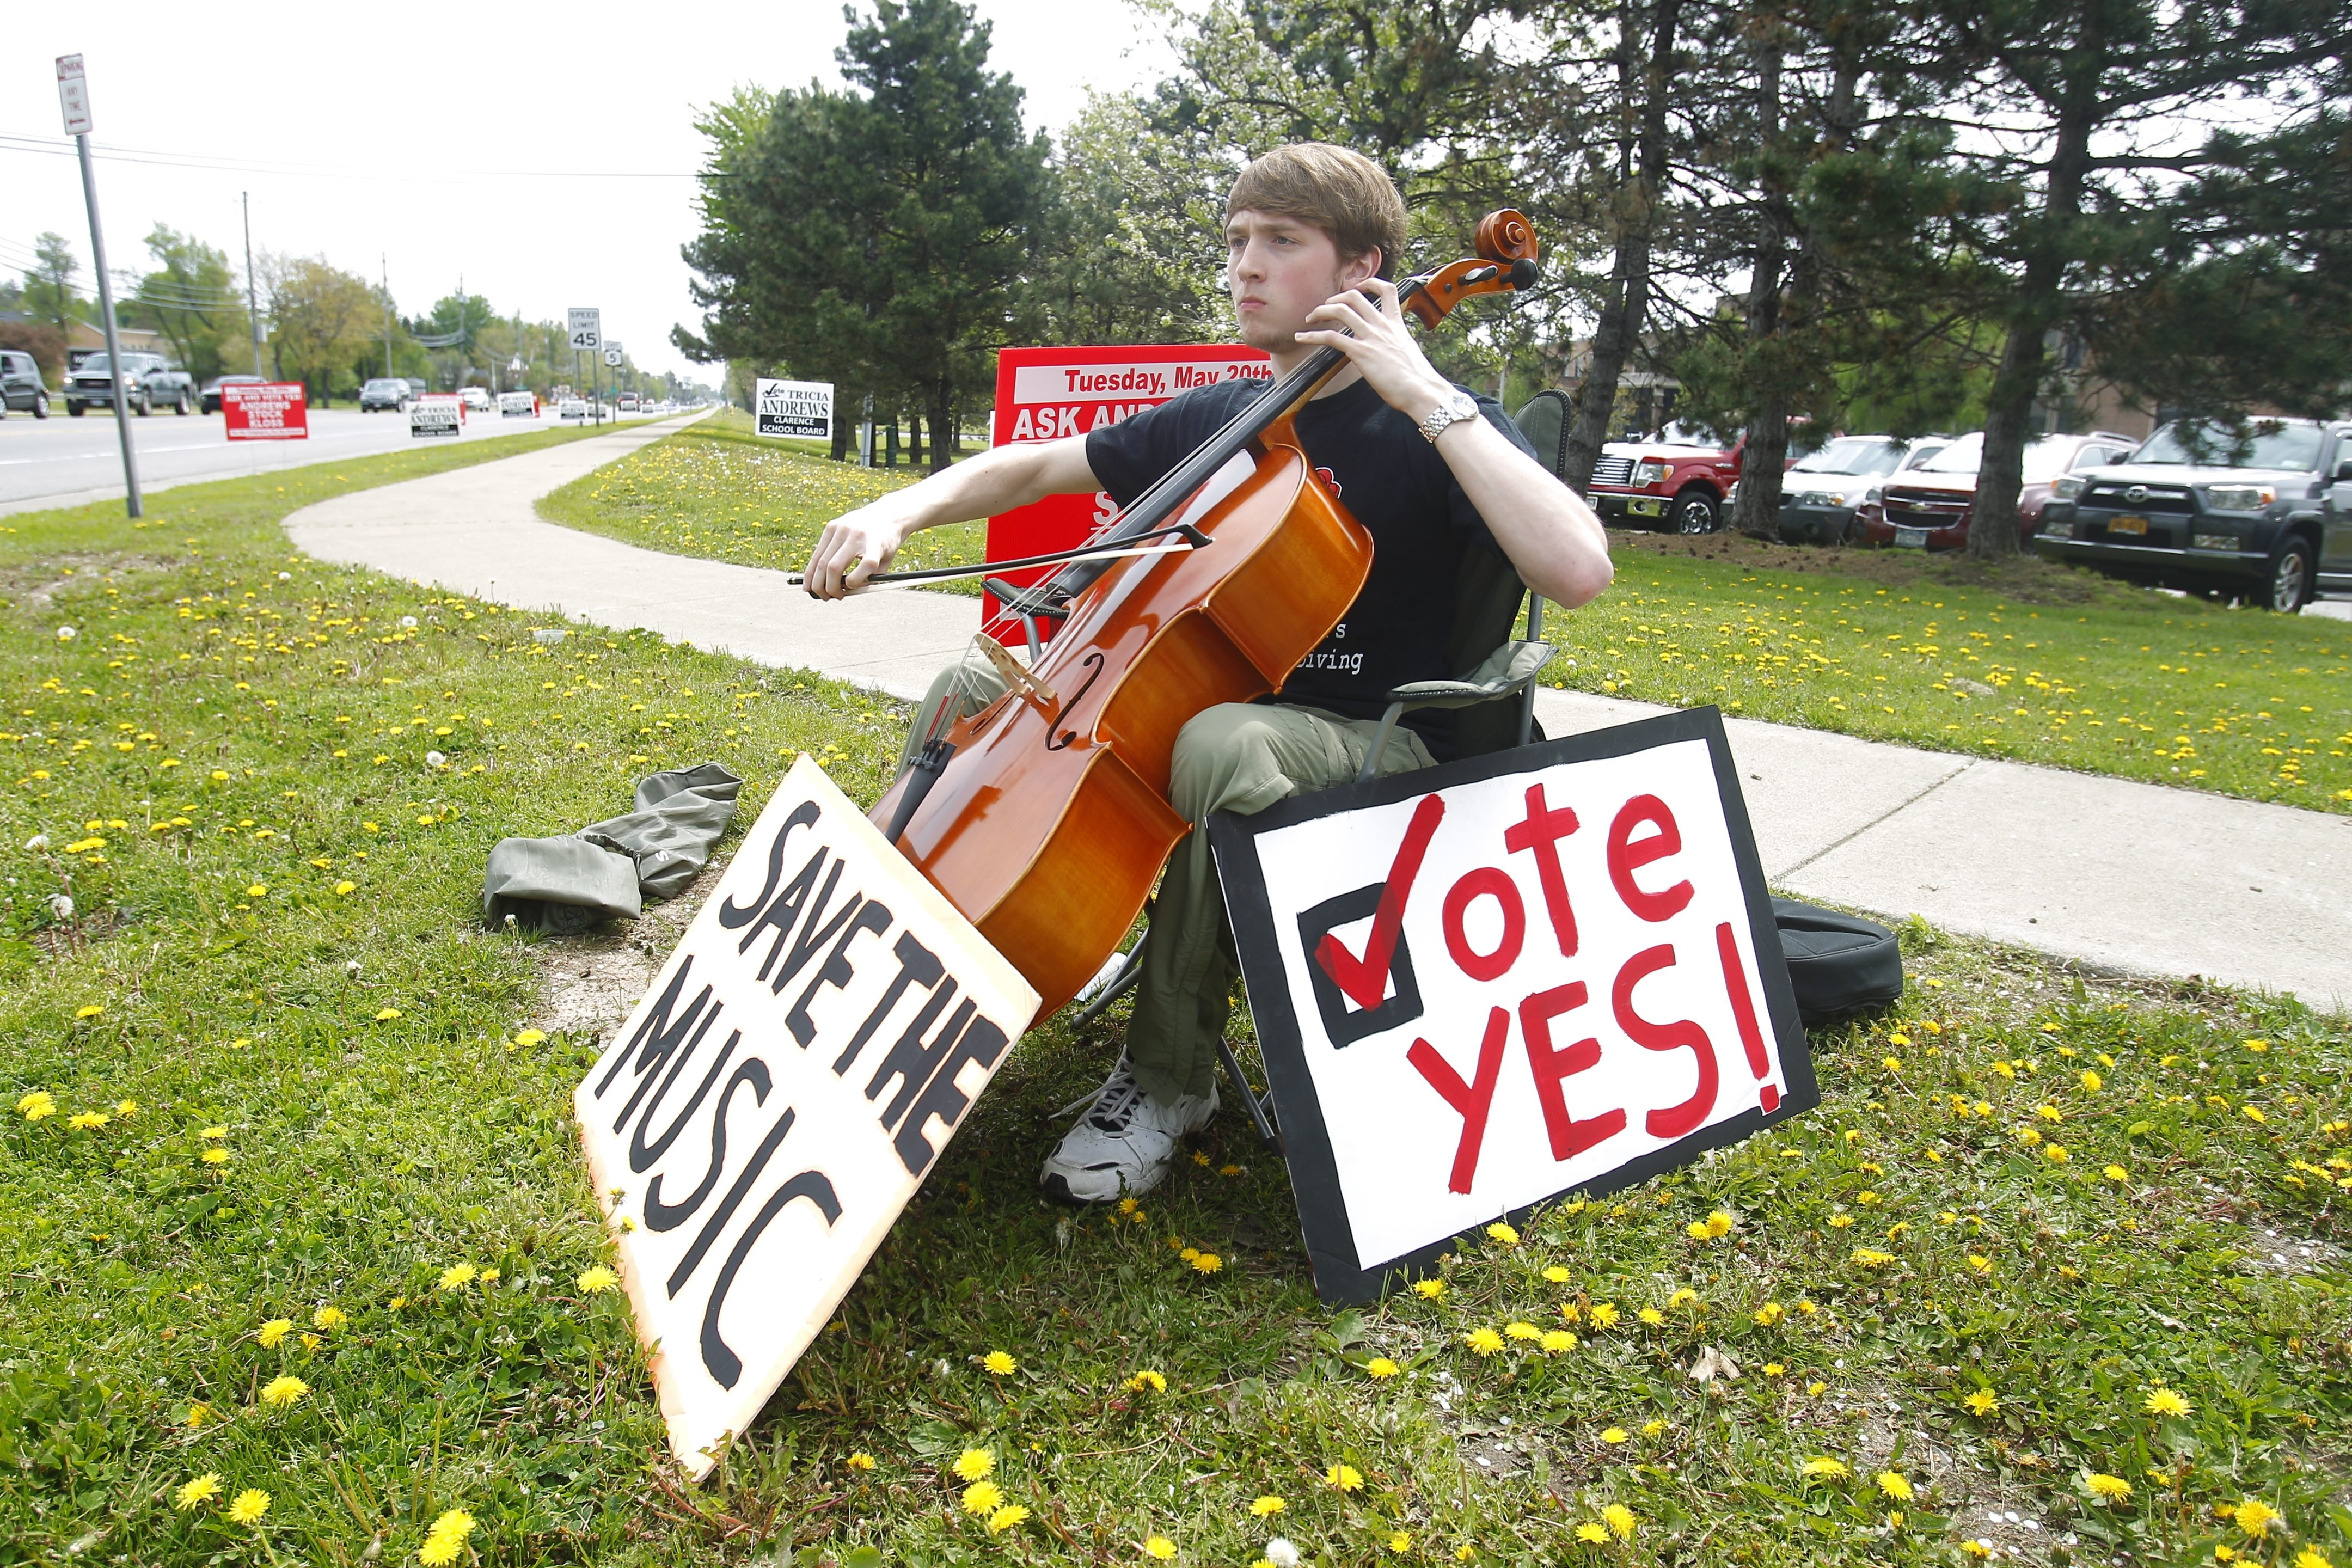 Andrew Cassidy played the cello Tuesday while urging Clarence residents to vote for the school budget, which passed easily. (John Hickey/Buffalo News)